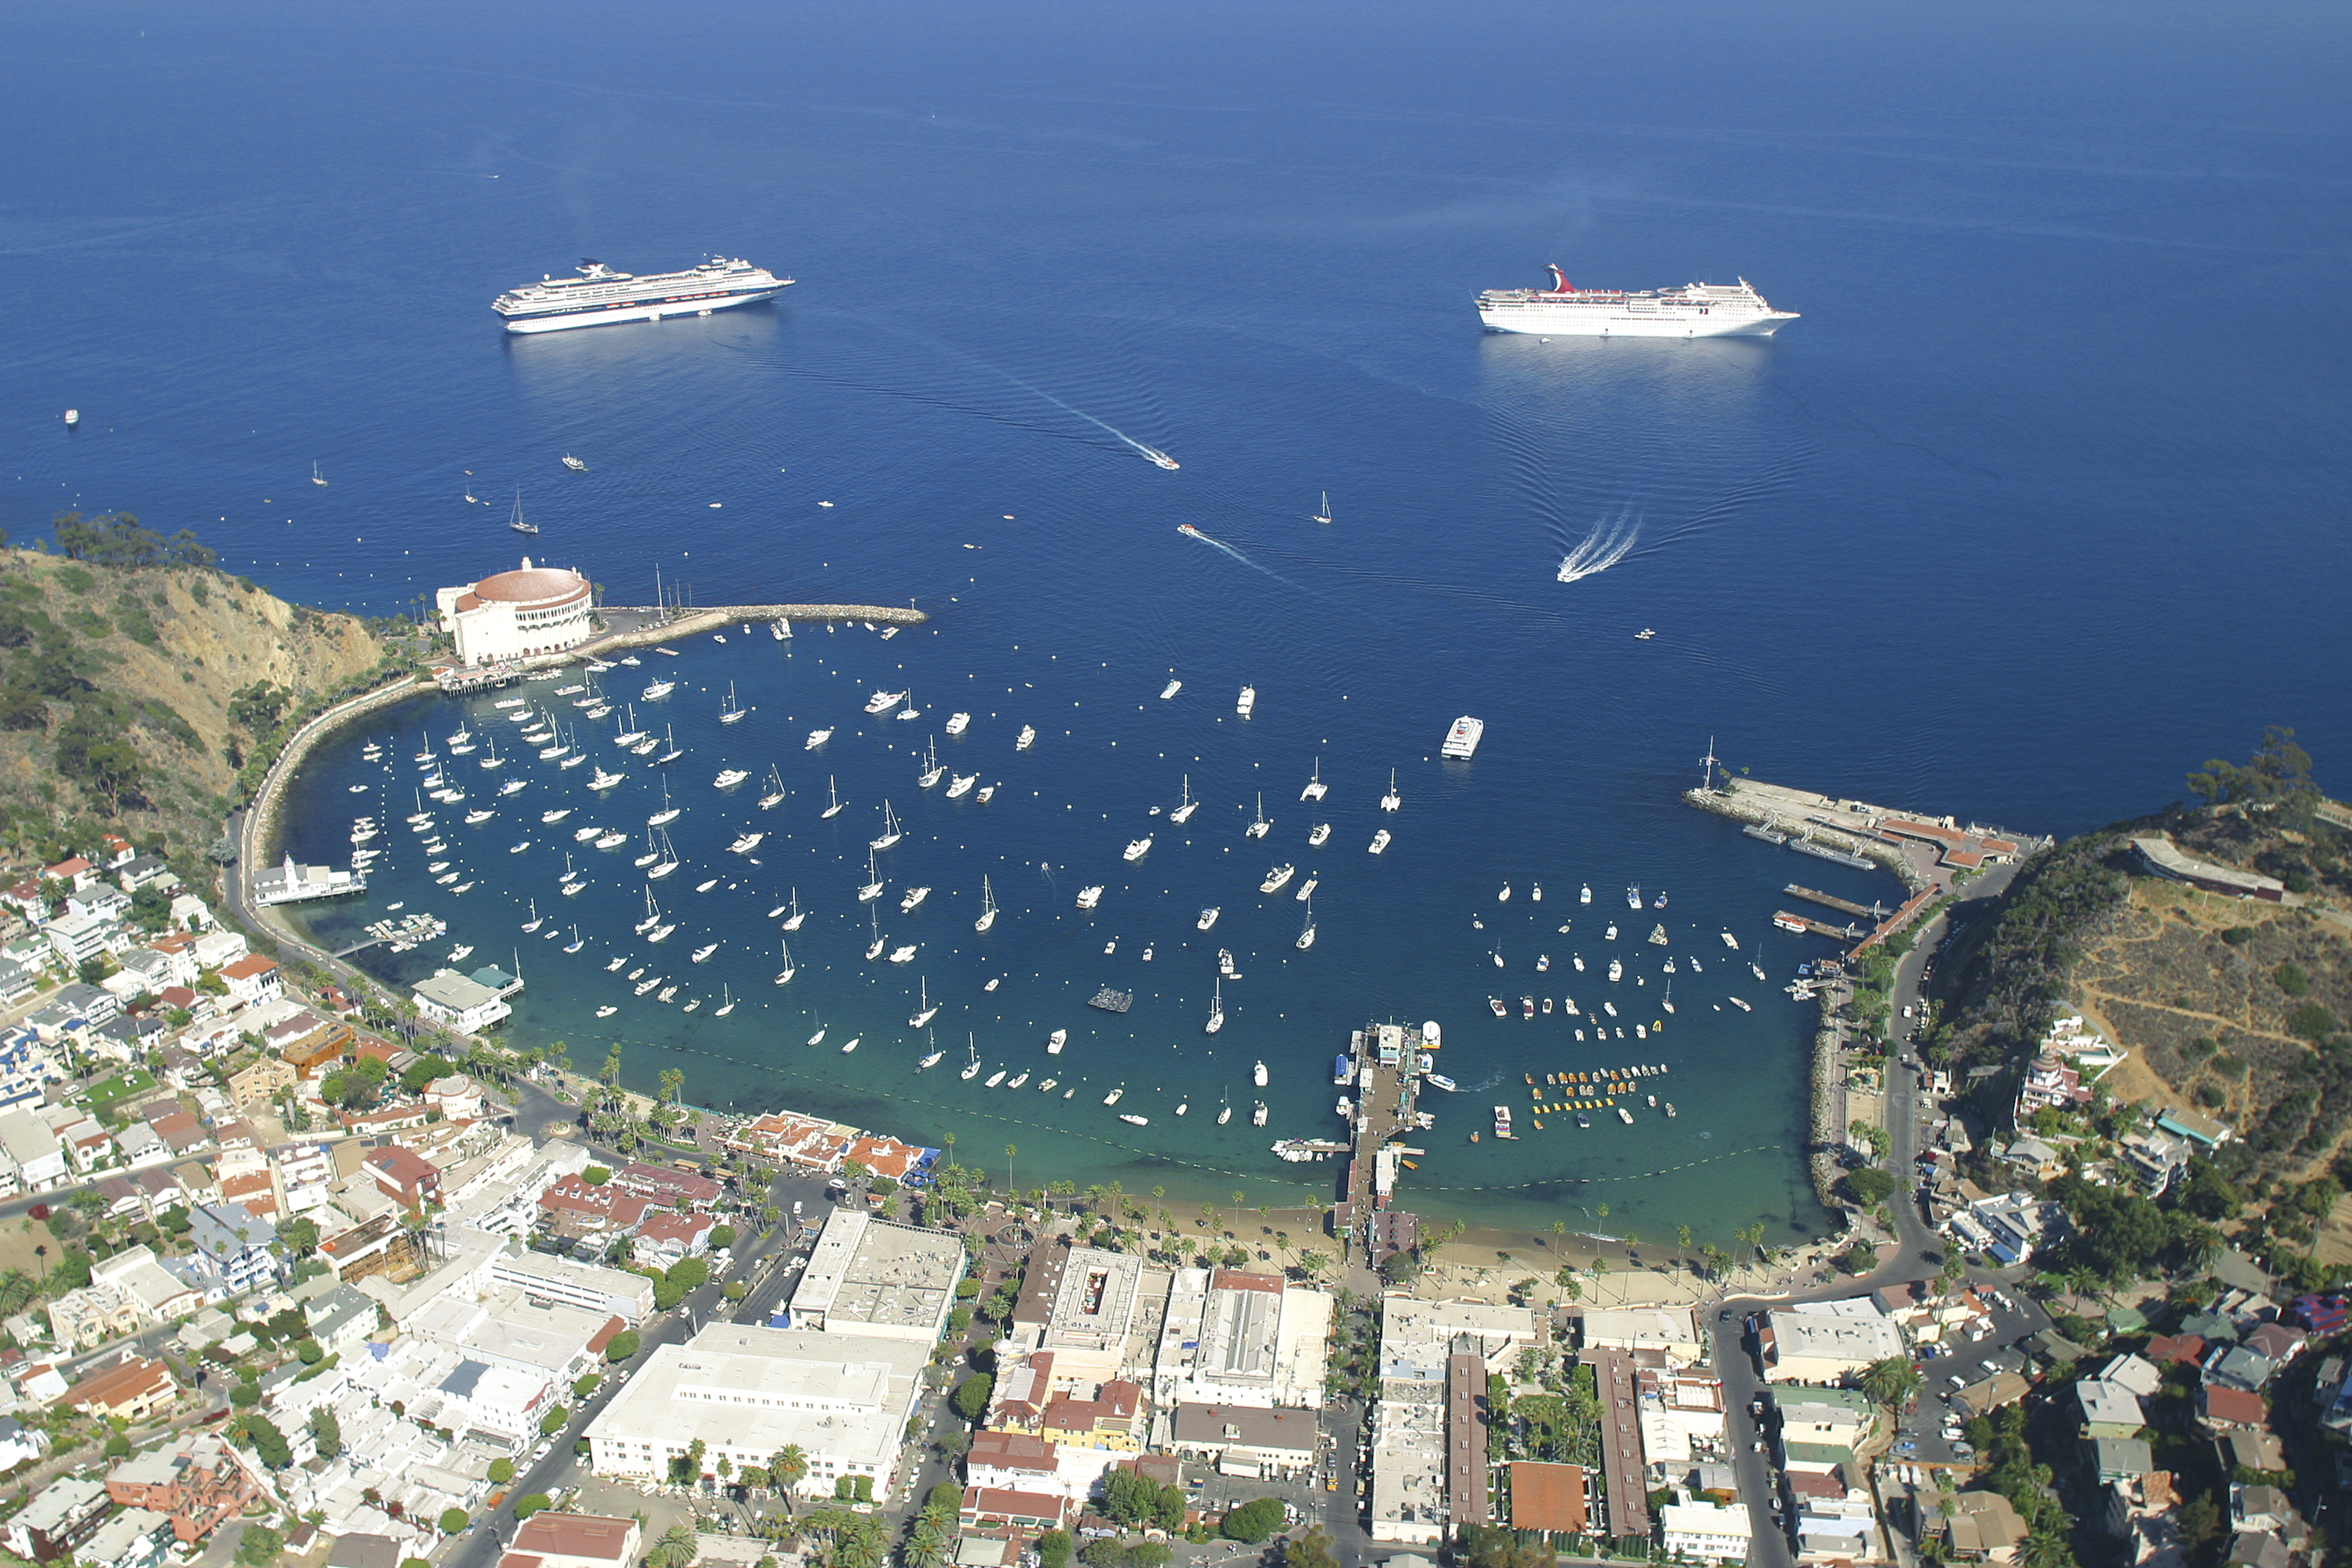 2cruiseship-harbor-aerial